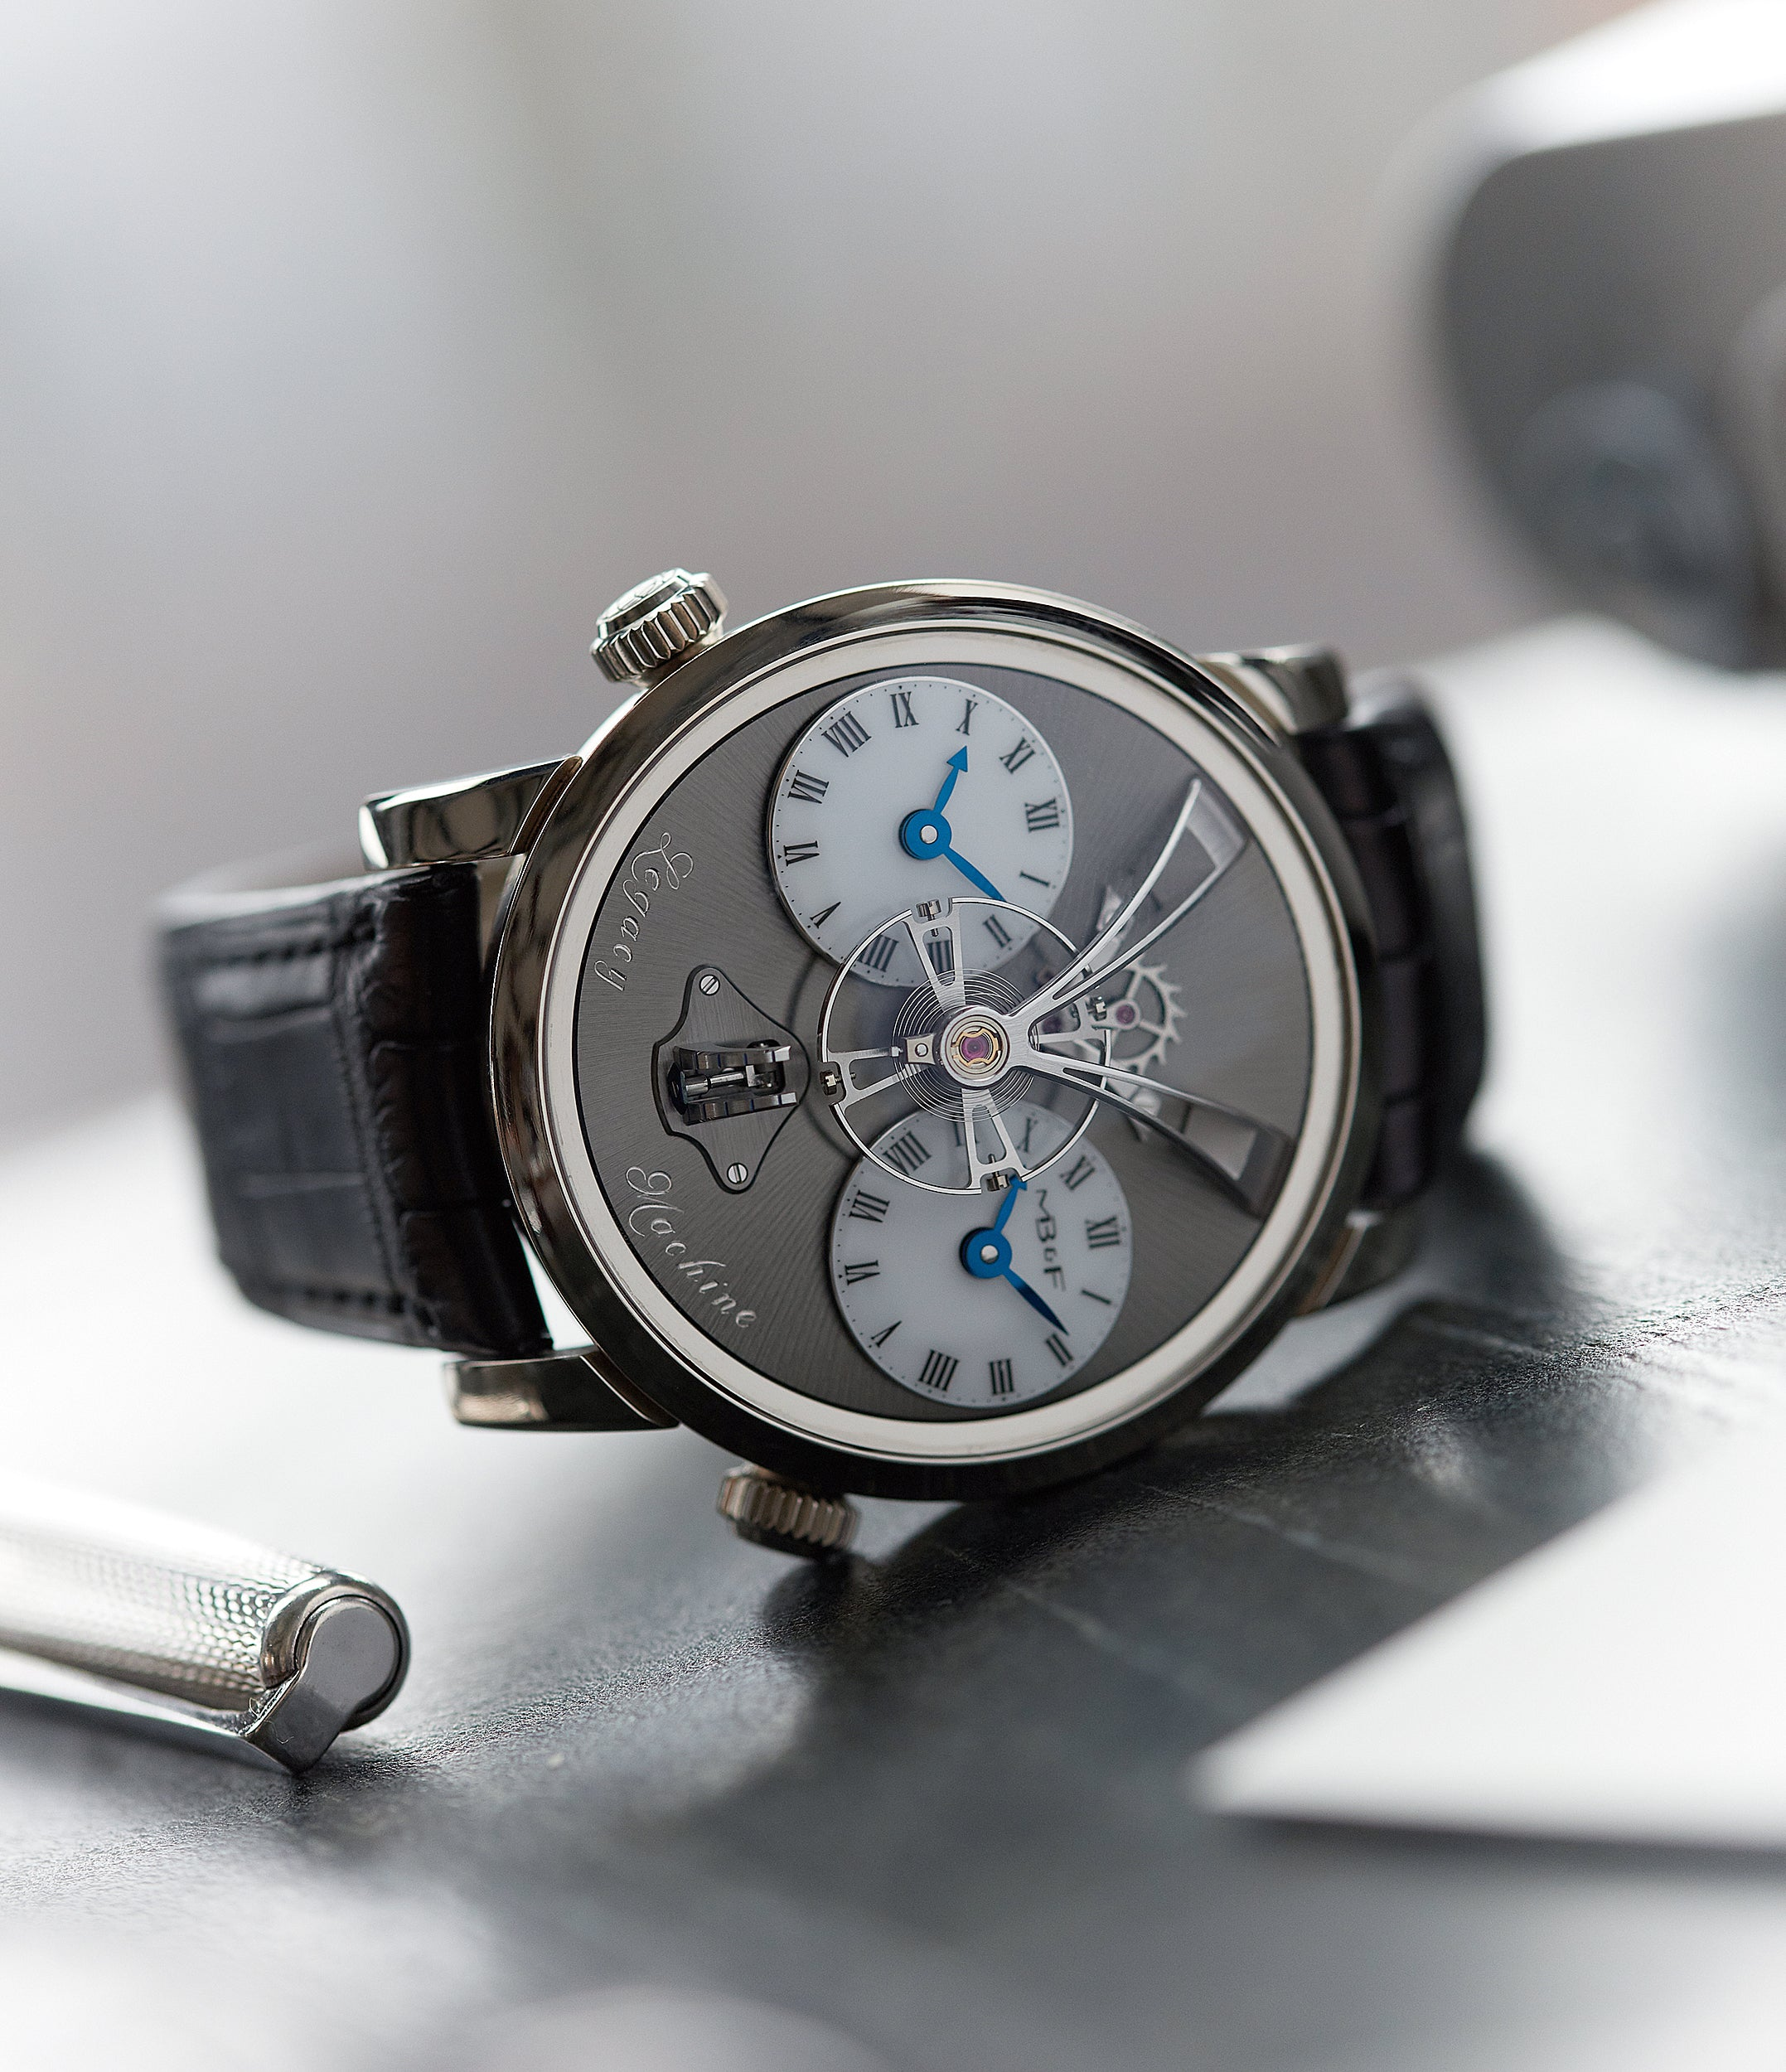 LM1 MB&F Legacy Machine white gold preowned dual time-zone watch for sale online at A Collected Man London UK specialist of rare independent watchmakers